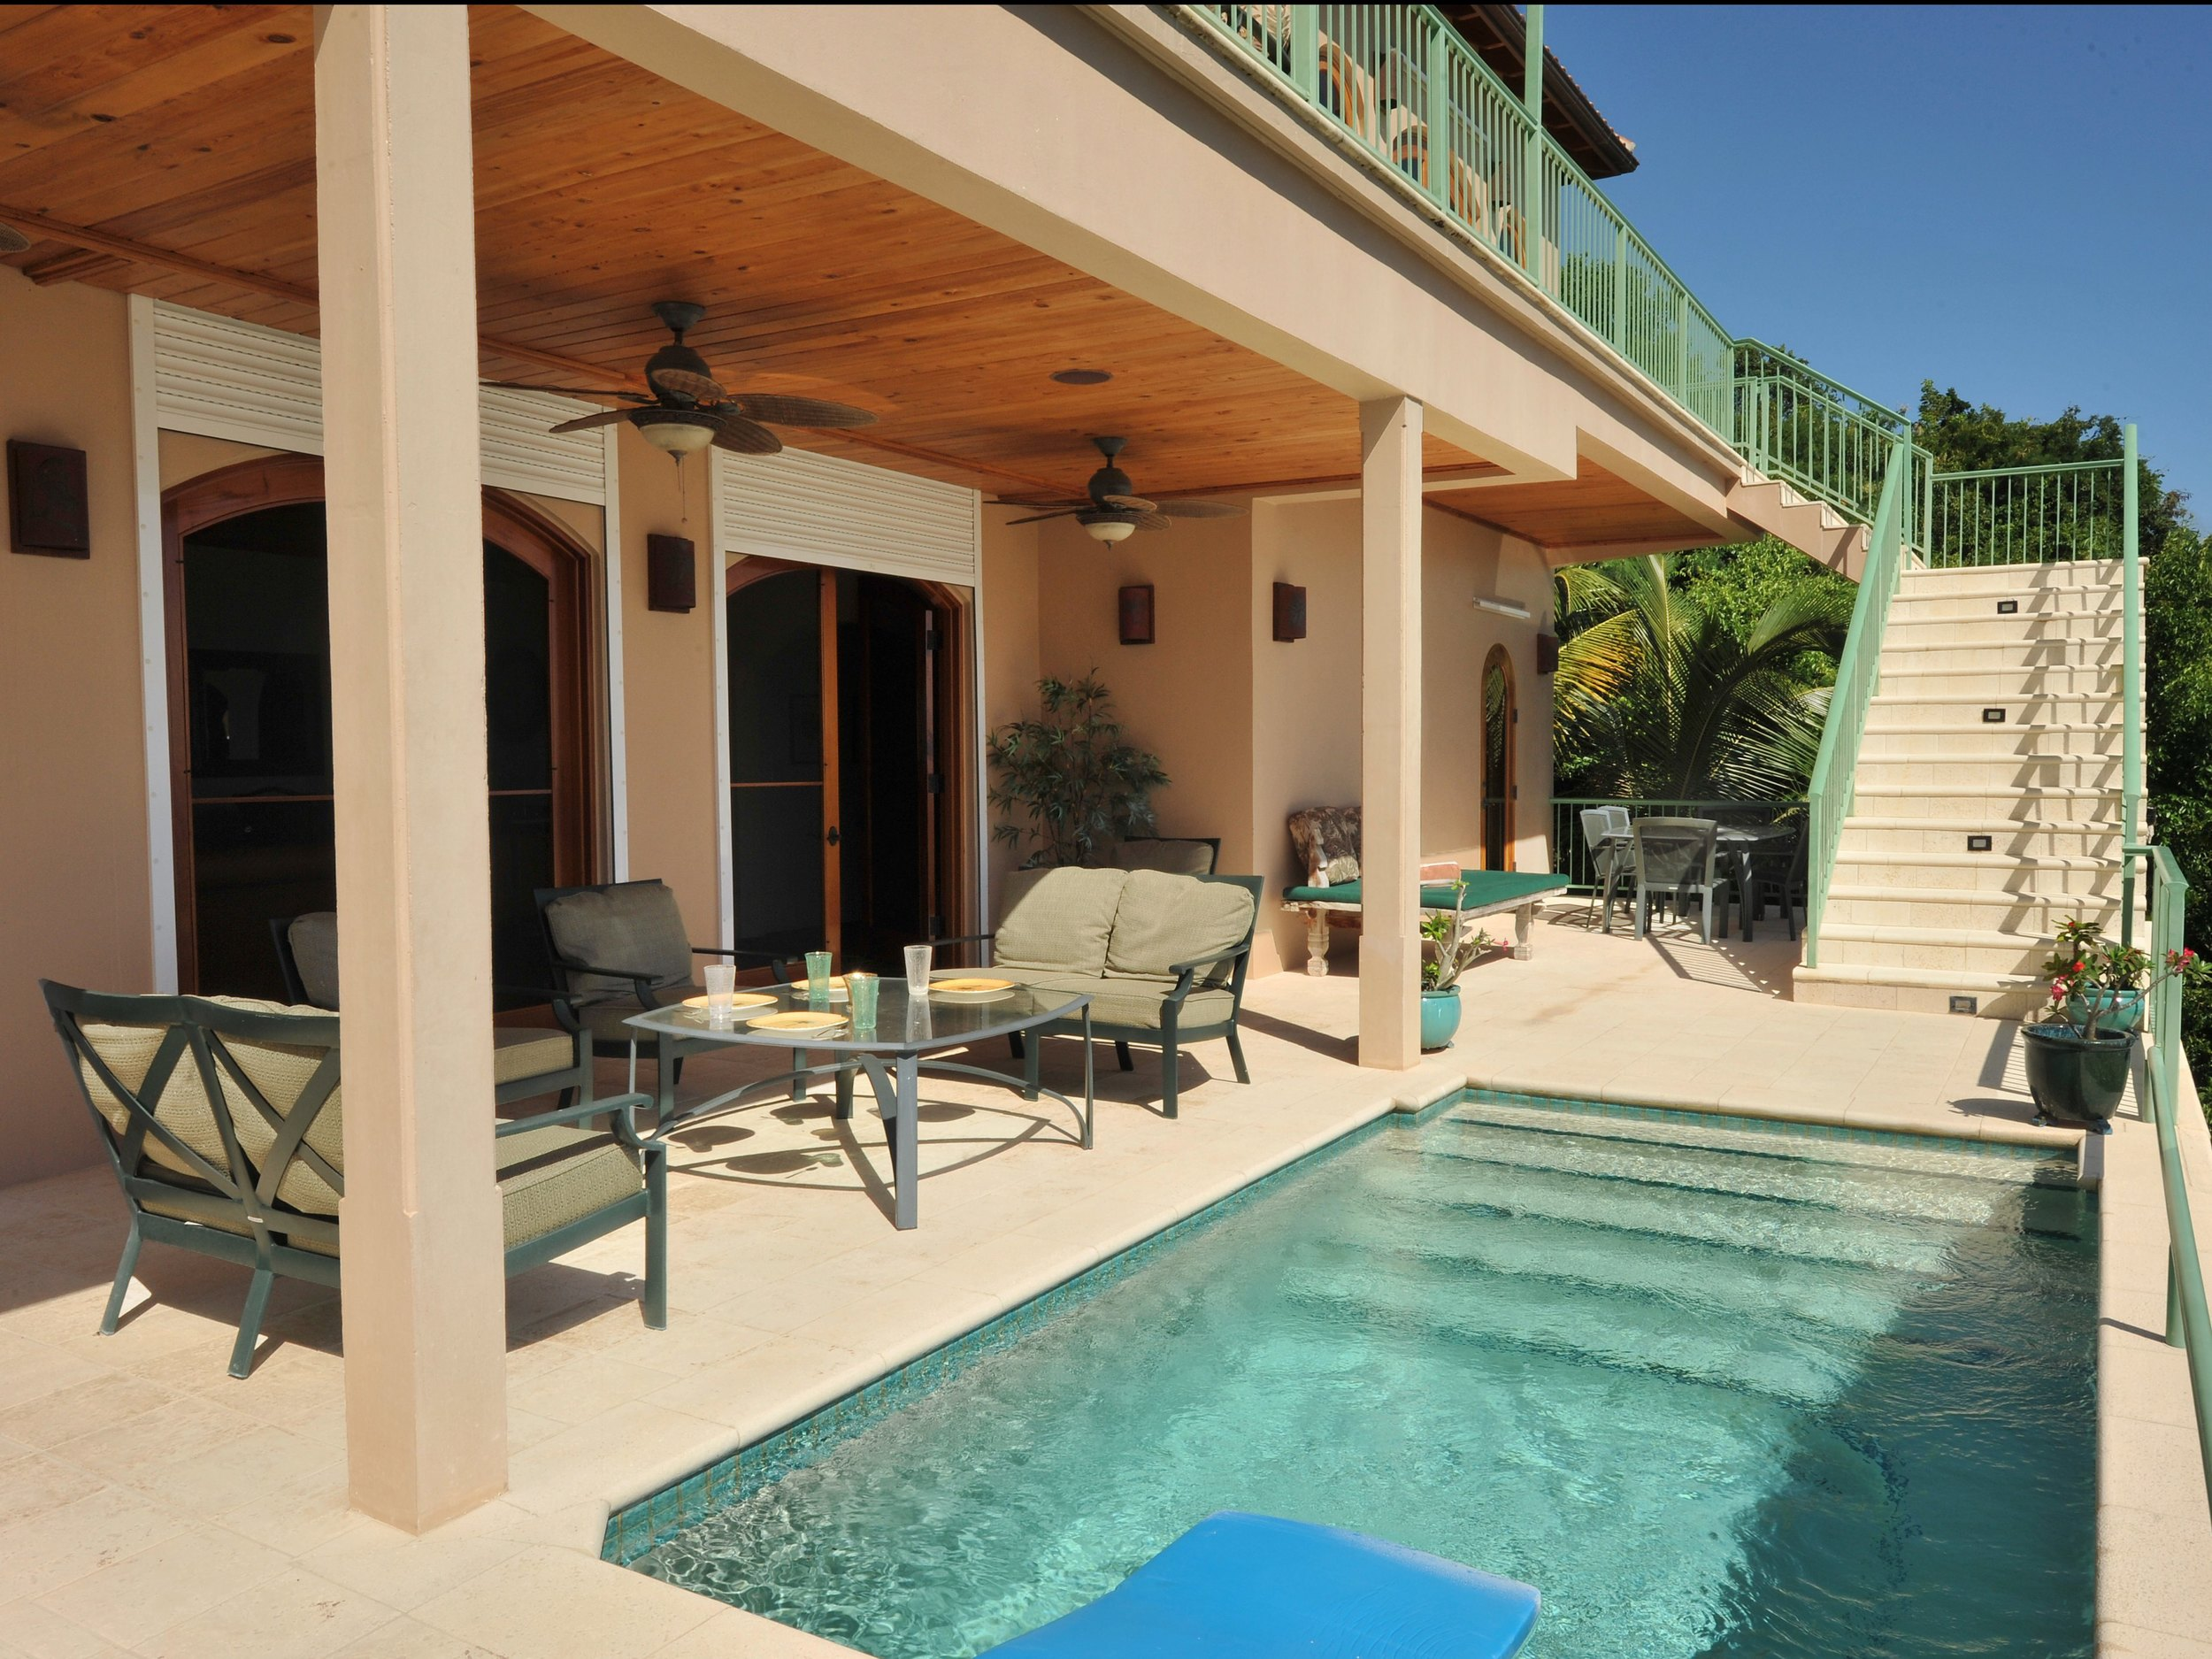 Pool and Lower Deck Area